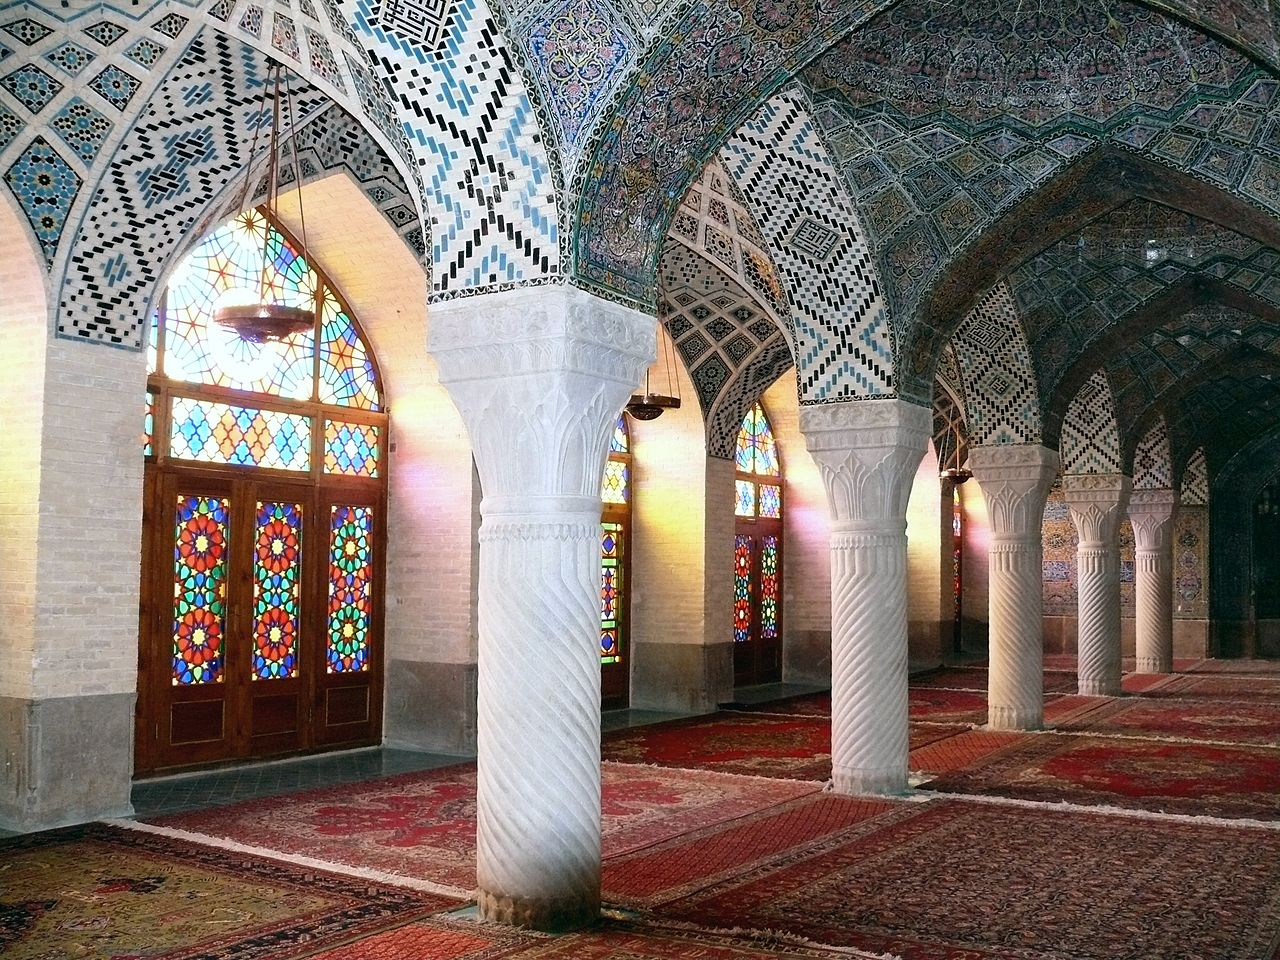 http://upload.wikimedia.org/wikipedia/commons/thumb/7/78/The_Nasr_ol_Molk_mosque_at_Shiraz.jpg/1280px-The_Nasr_ol_Molk_mosque_at_Shiraz.jpg